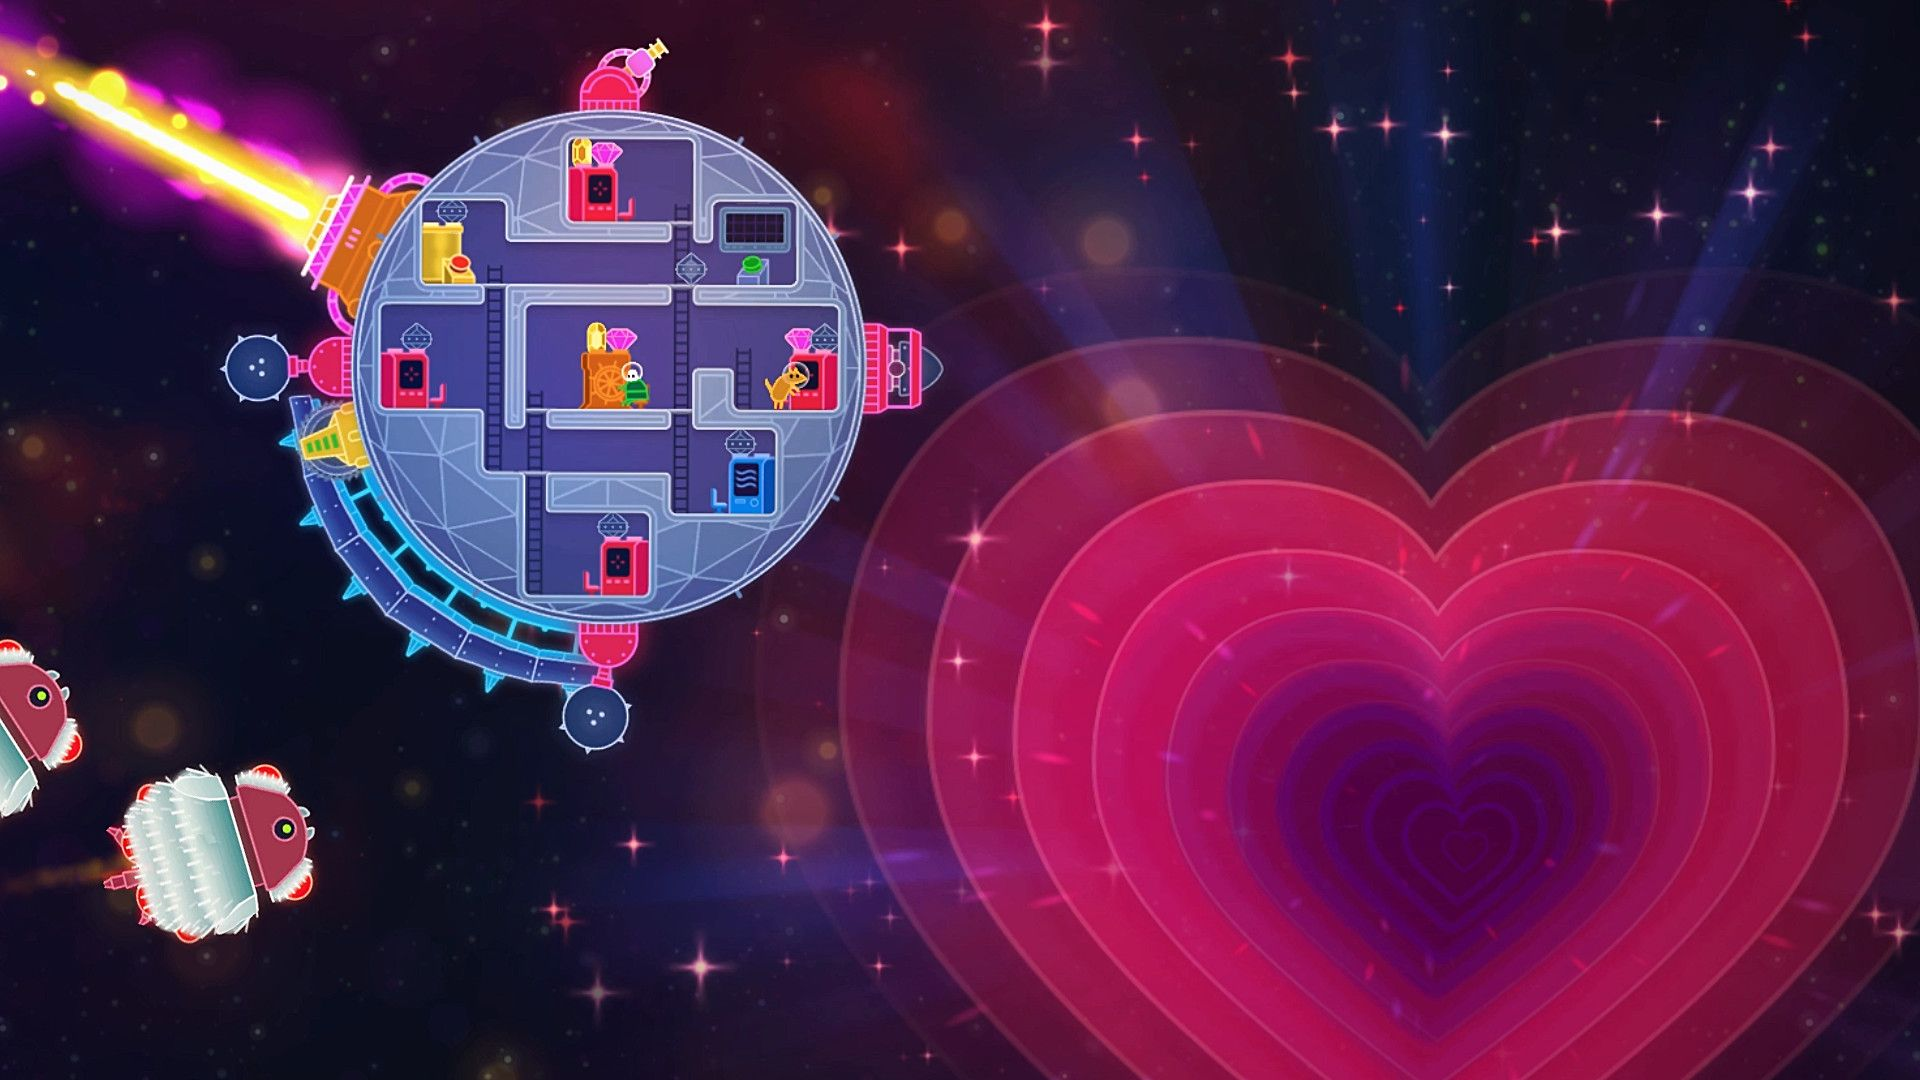 Скриншот Lovers in a Dangerous Spacetime v1.1.4 №2